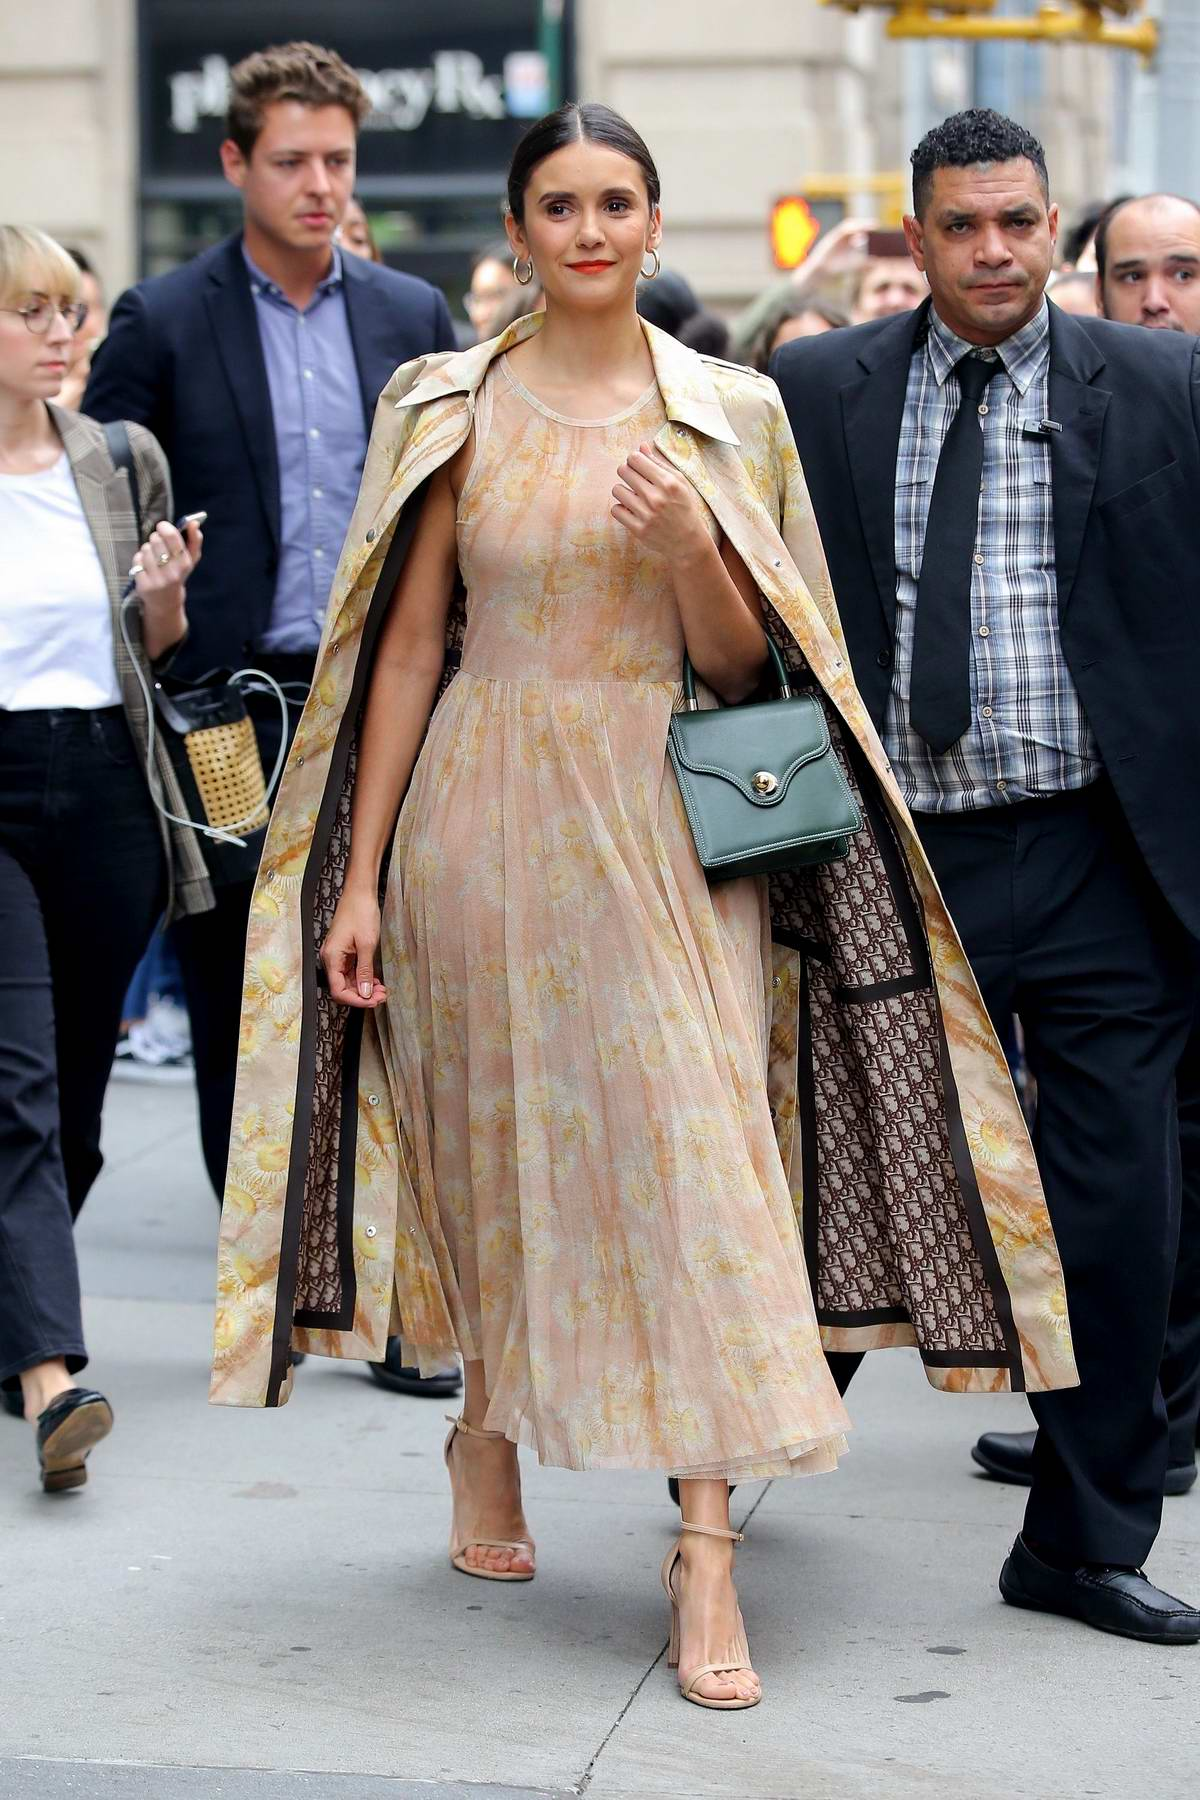 Nina Dobrev looks gorgeous in a beige floral print dress while visiting the Build Series in New York City